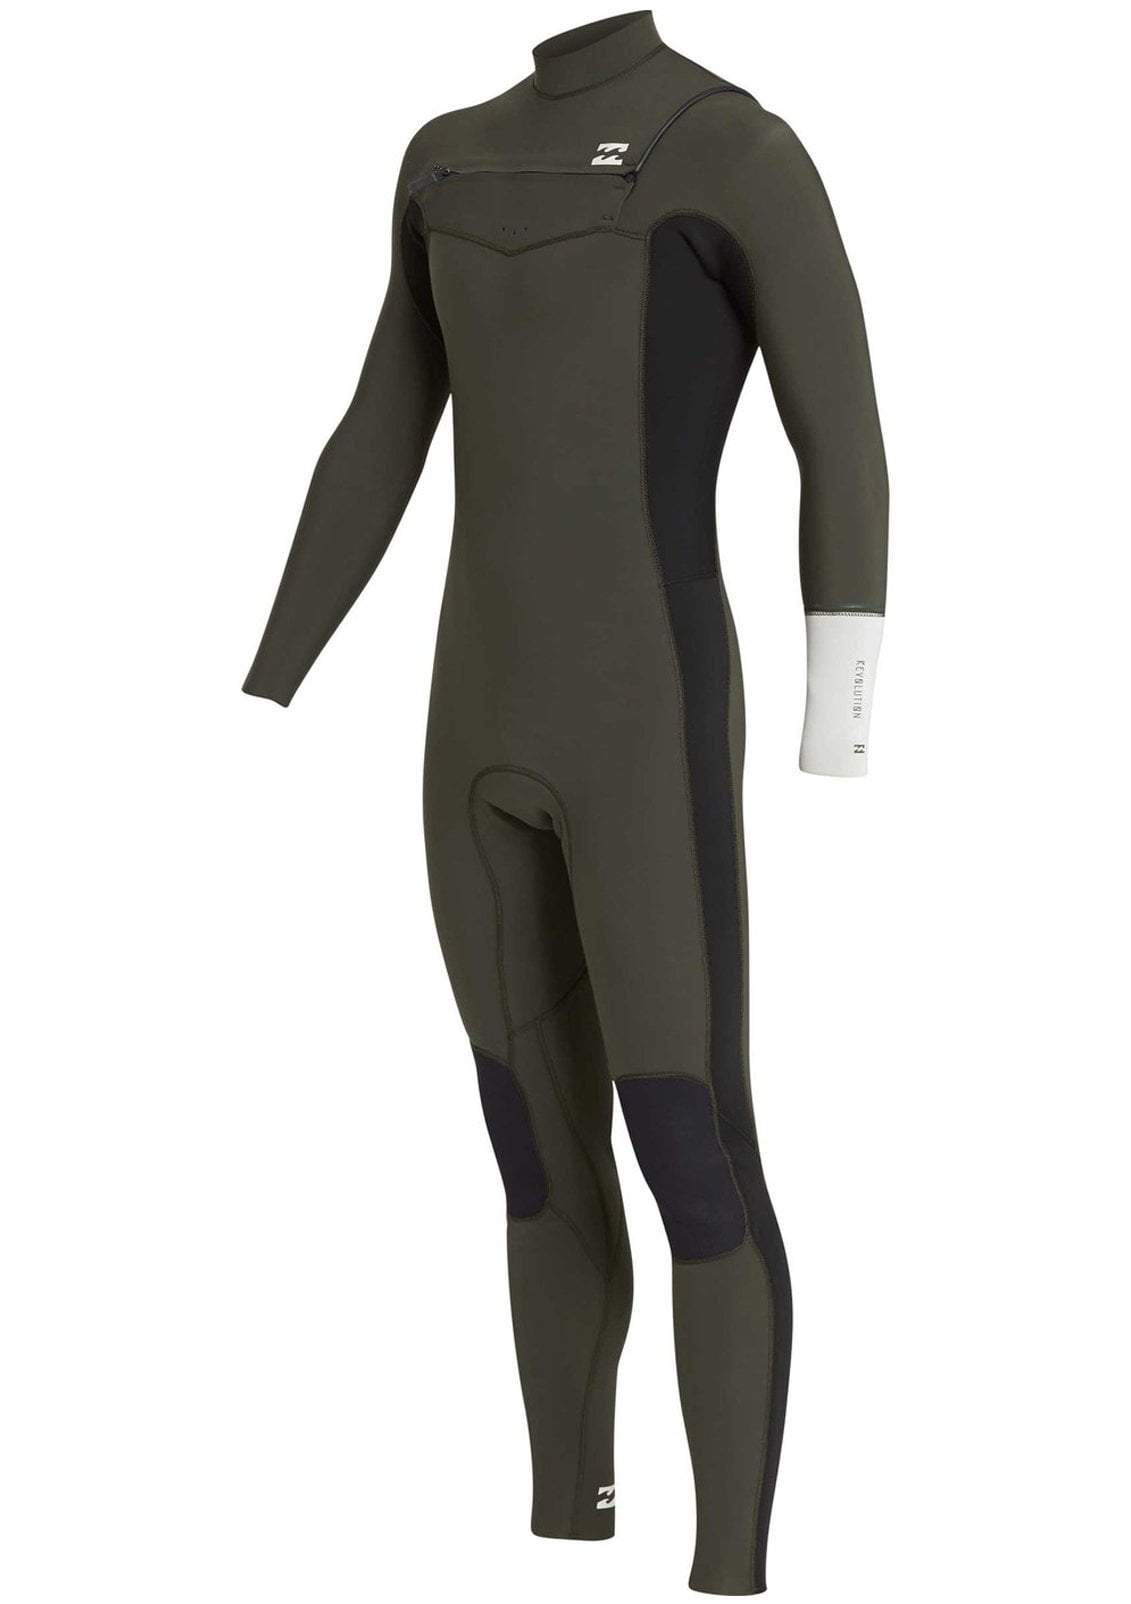 382de49728 Billabong 3 2 Furnace Revolution Chest Zip Wetsuit – Jacks Surfboards